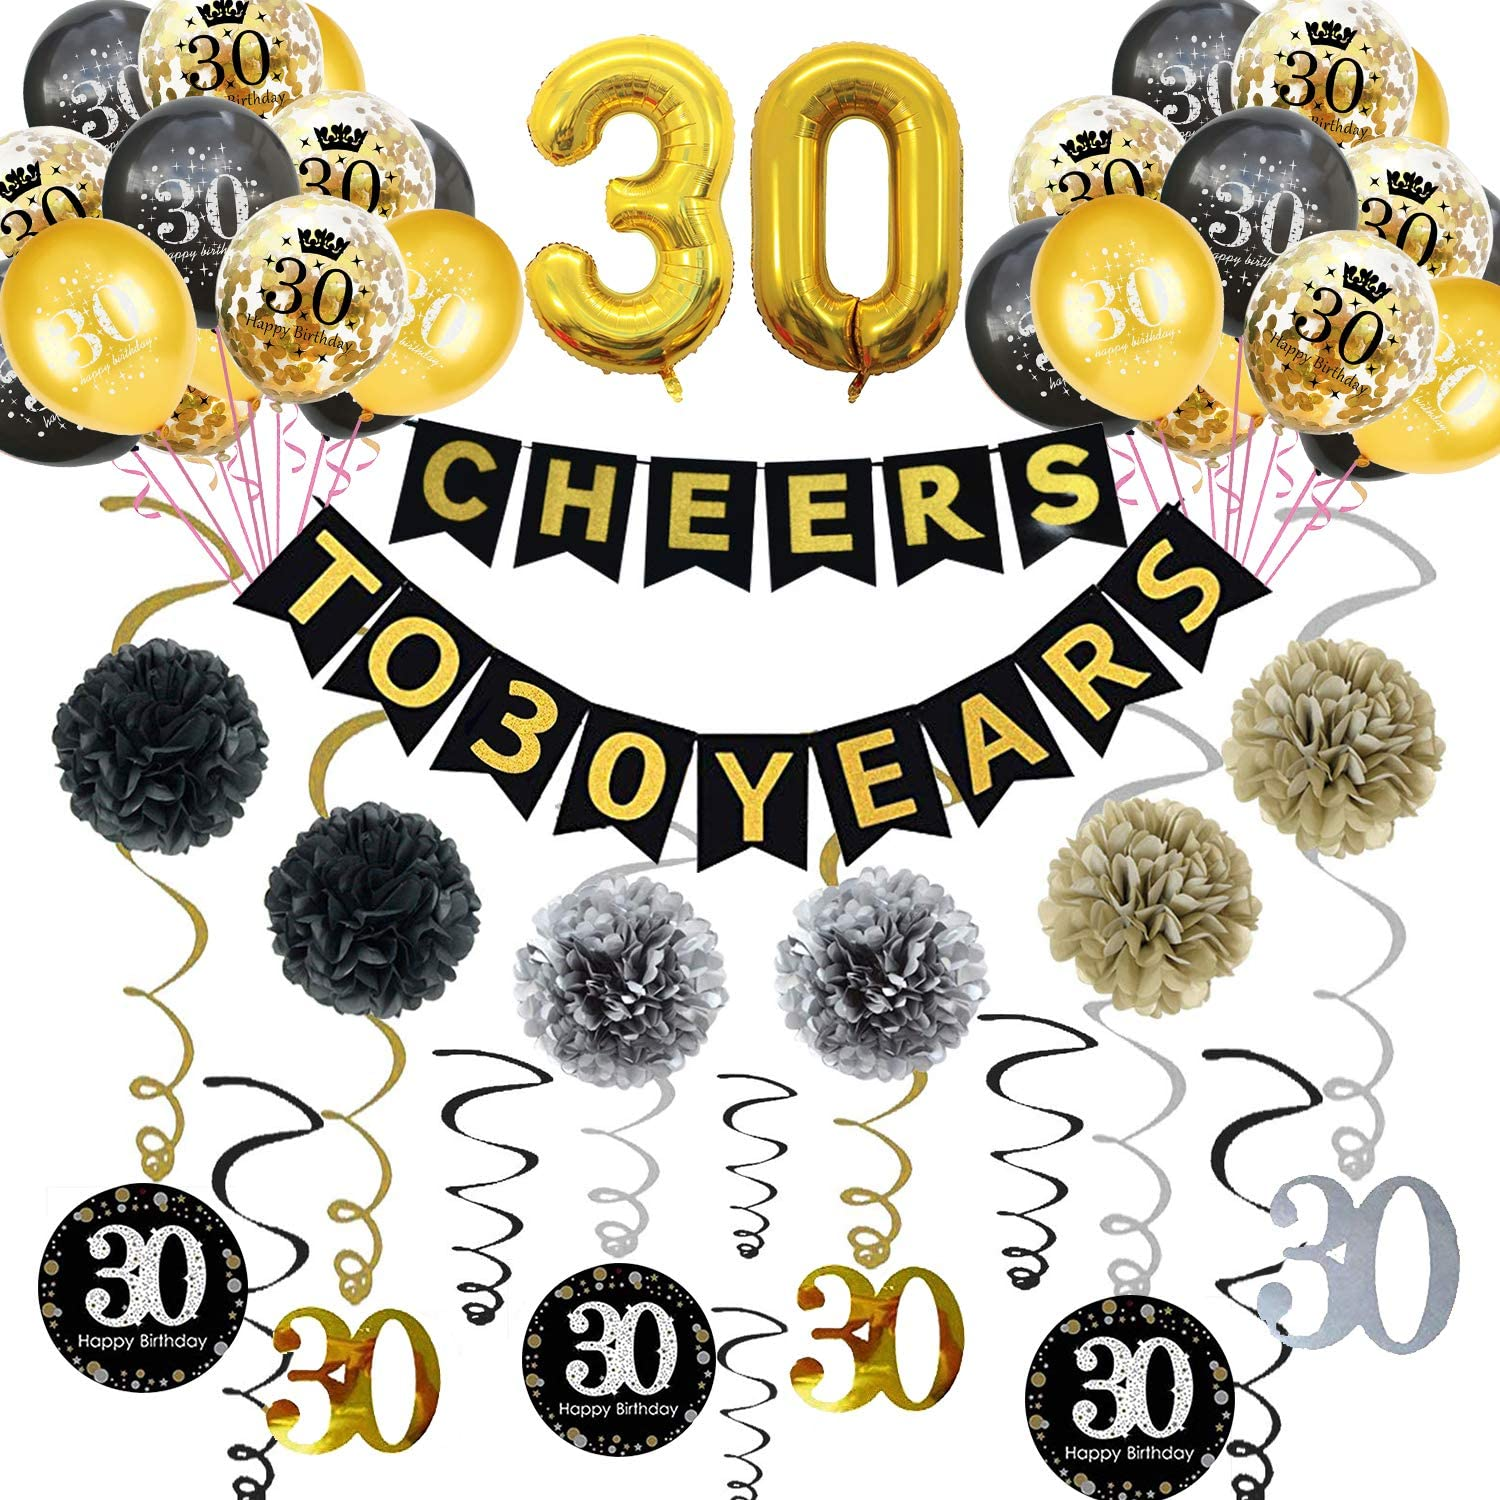 Happy 30th Birthday Banner and Balloons 30th Birthday Party Supplies Anniversary Decorations Sparkling Celebration 30 Hanging Swirls 30th Birthday Gifts for Women//Men 30th Birthday Party Decorations